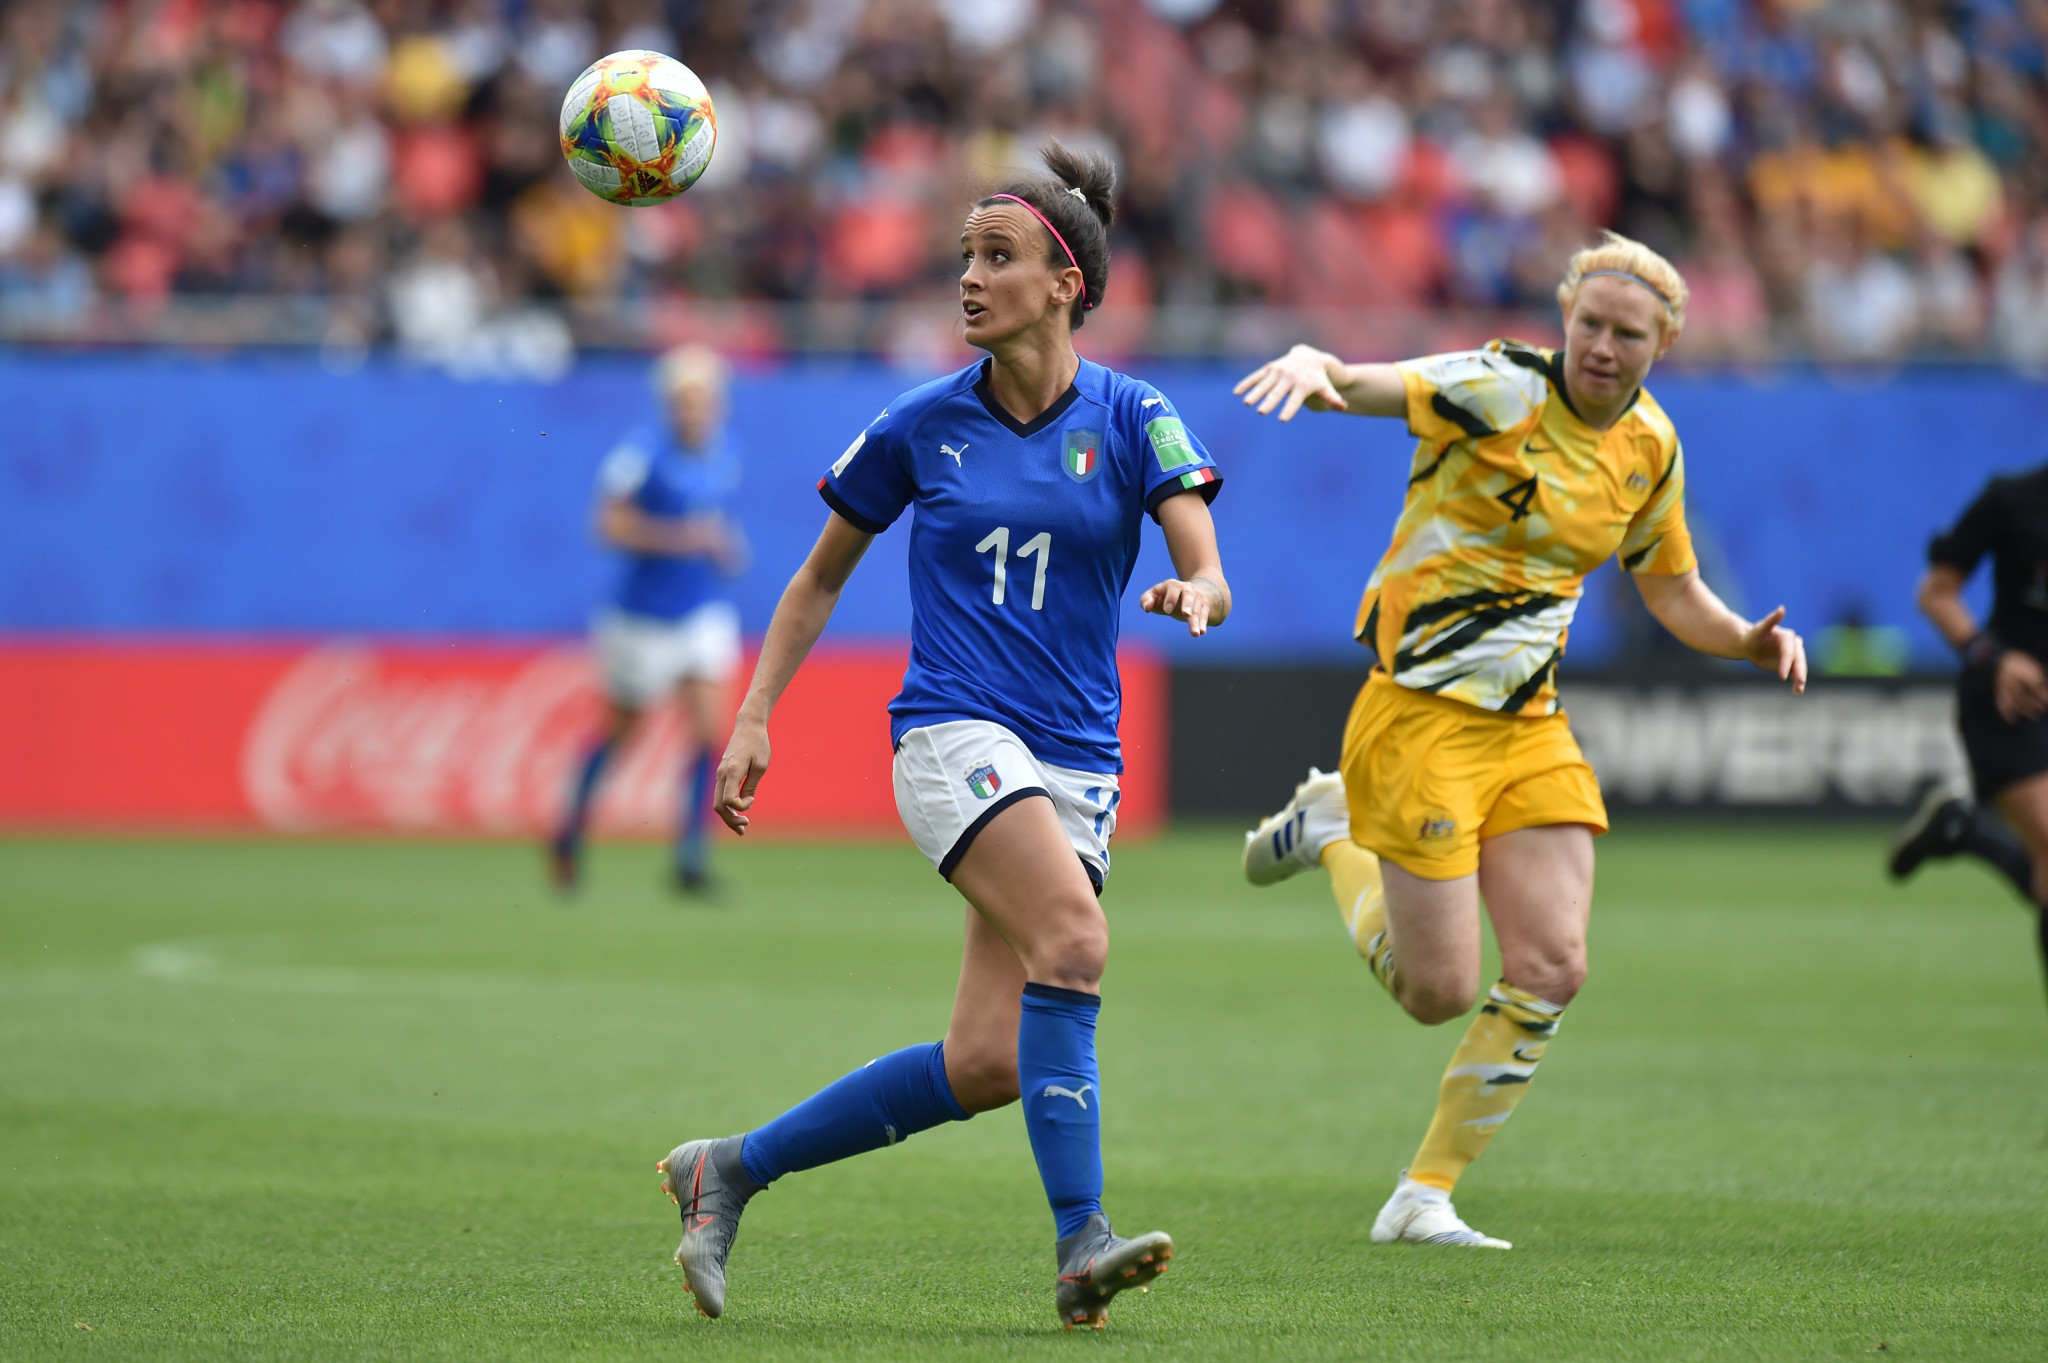 In Italy, more than seven million people tuned in to watch the Azzurri defeat Australia 2-1 at the FIFA Women's World Cup - the previous highest audience for the competition had been 202,844 ©Getty Images